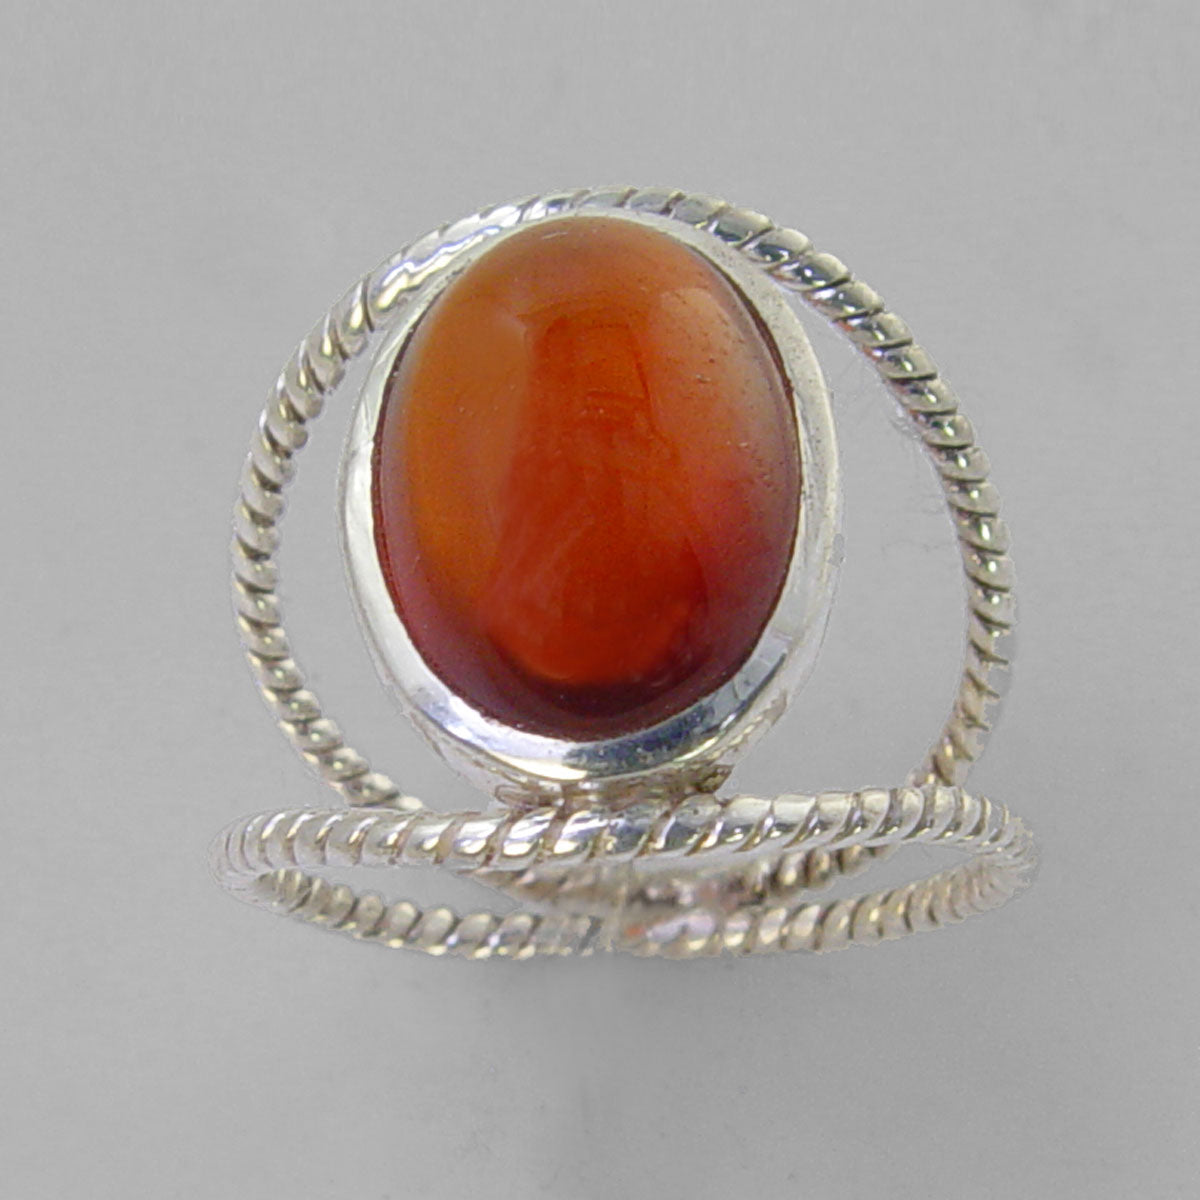 Cinnamon Hessonite Garnet 8.5 ct Oval Cab Sterling Silver Ring, Size 8.5